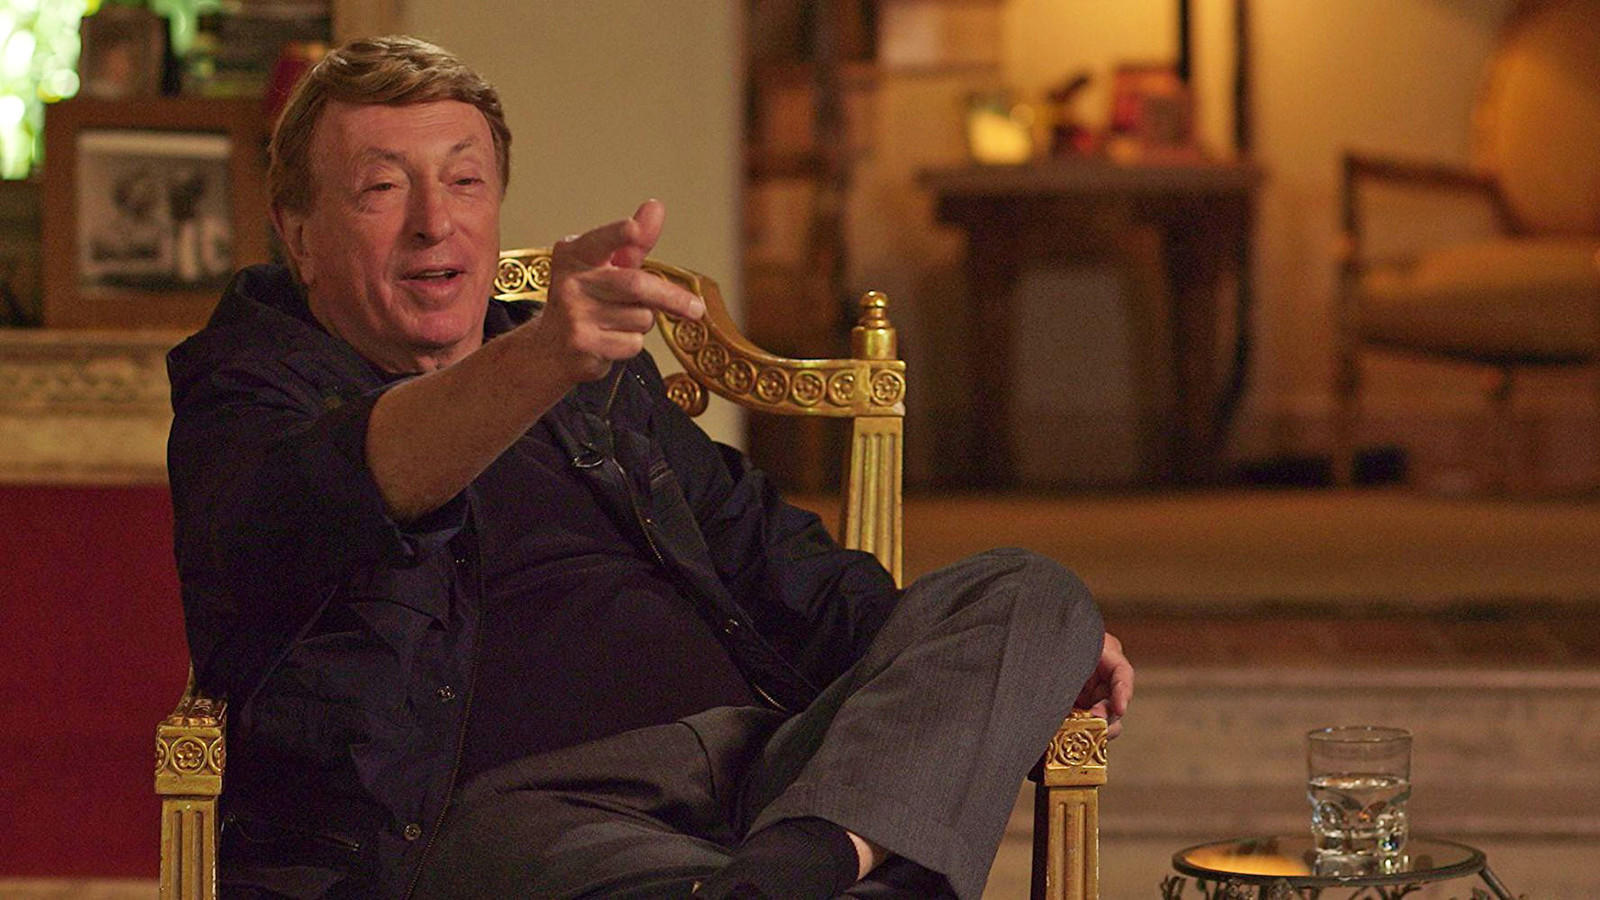 Larry Cohen, B-movie director of 1970s cult horror films, dies at 77